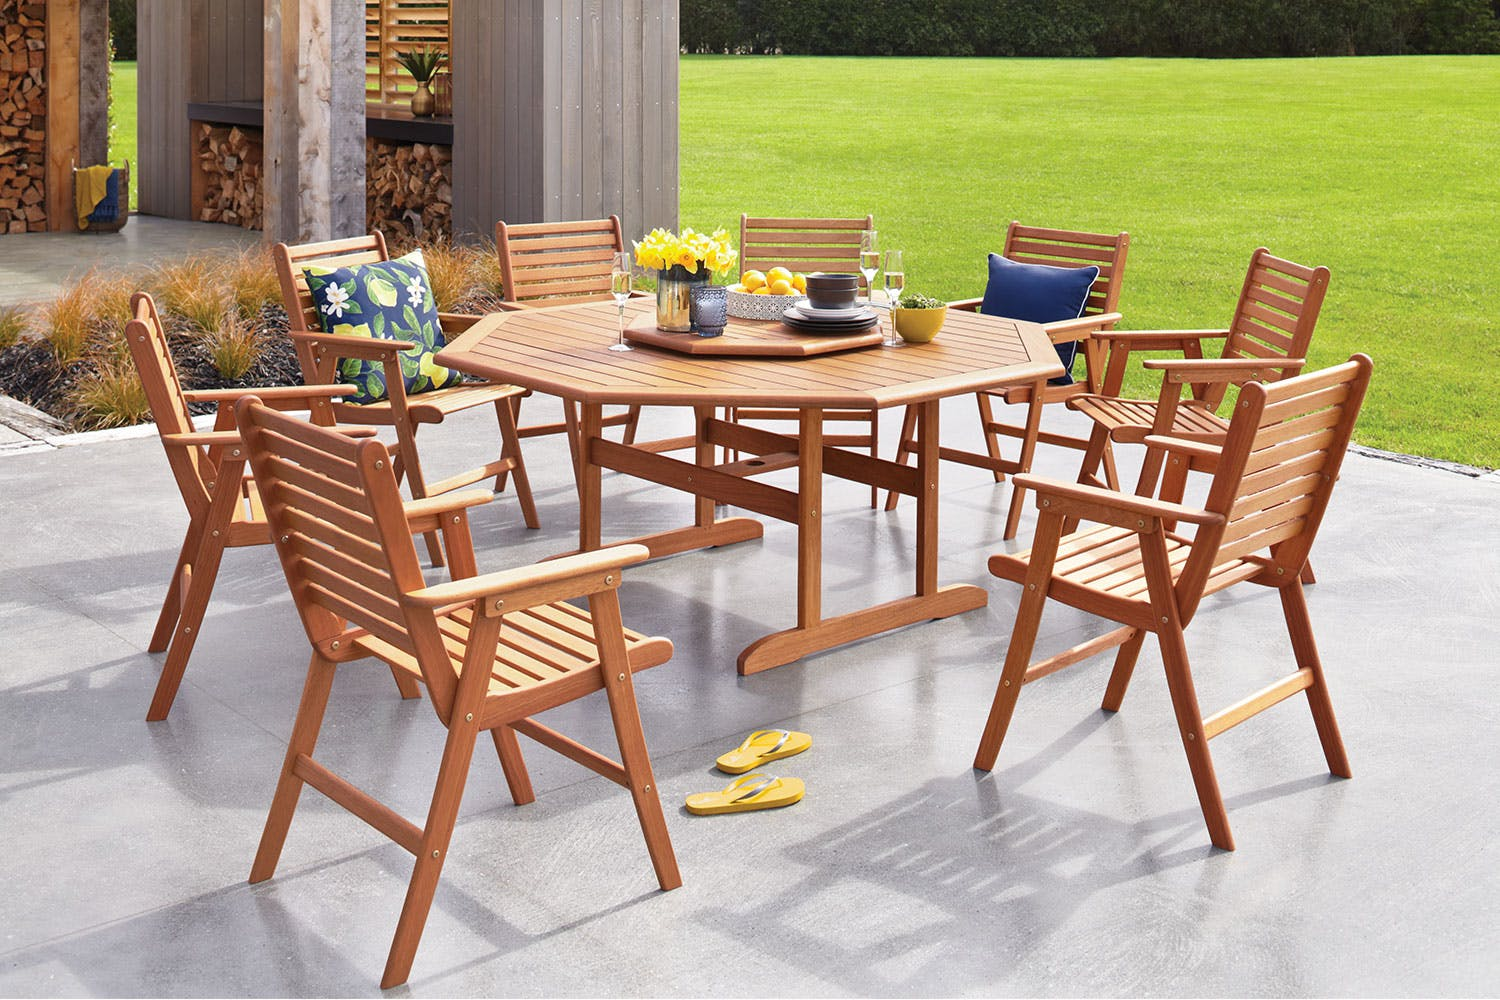 Bali 9 piece outdoor dining setting